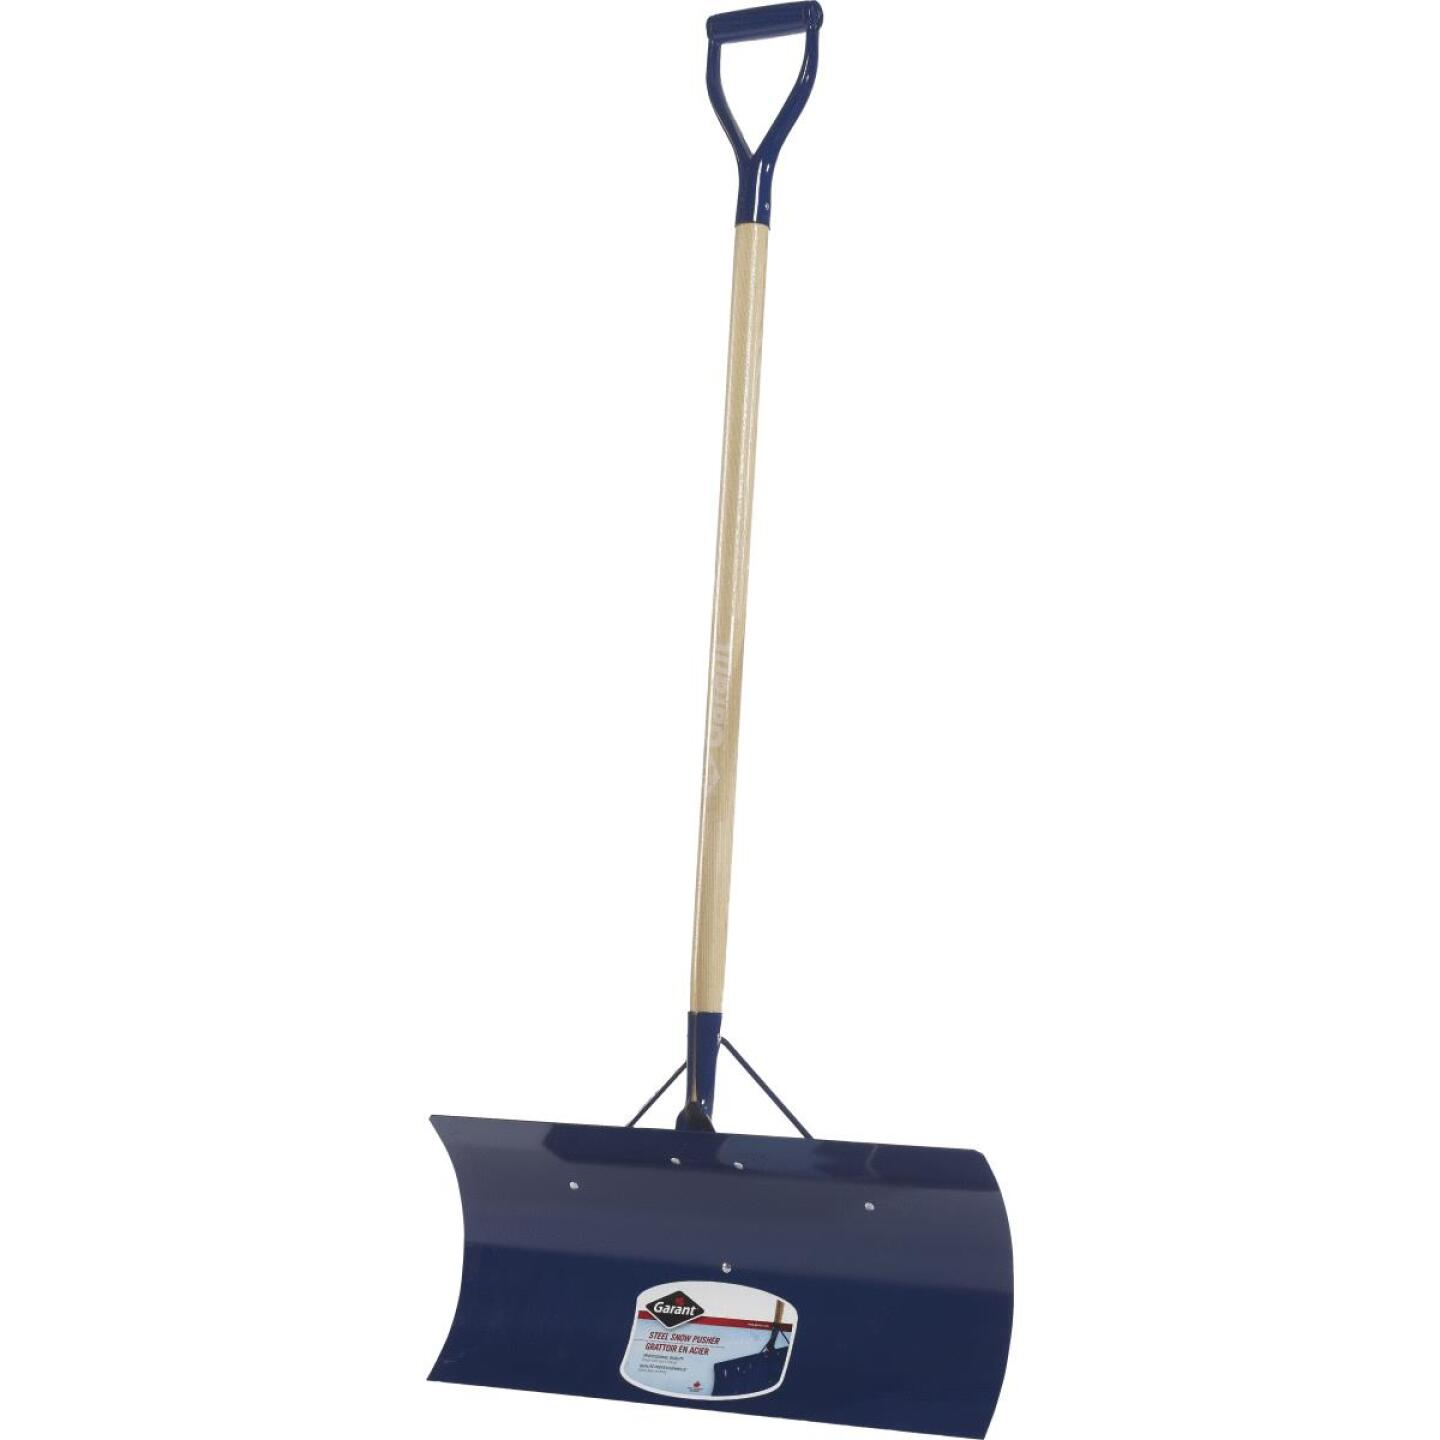 Garant Yukon 24 In. Steel Snow Pusher with 48 In. D-Grip Wood Handle Image 1